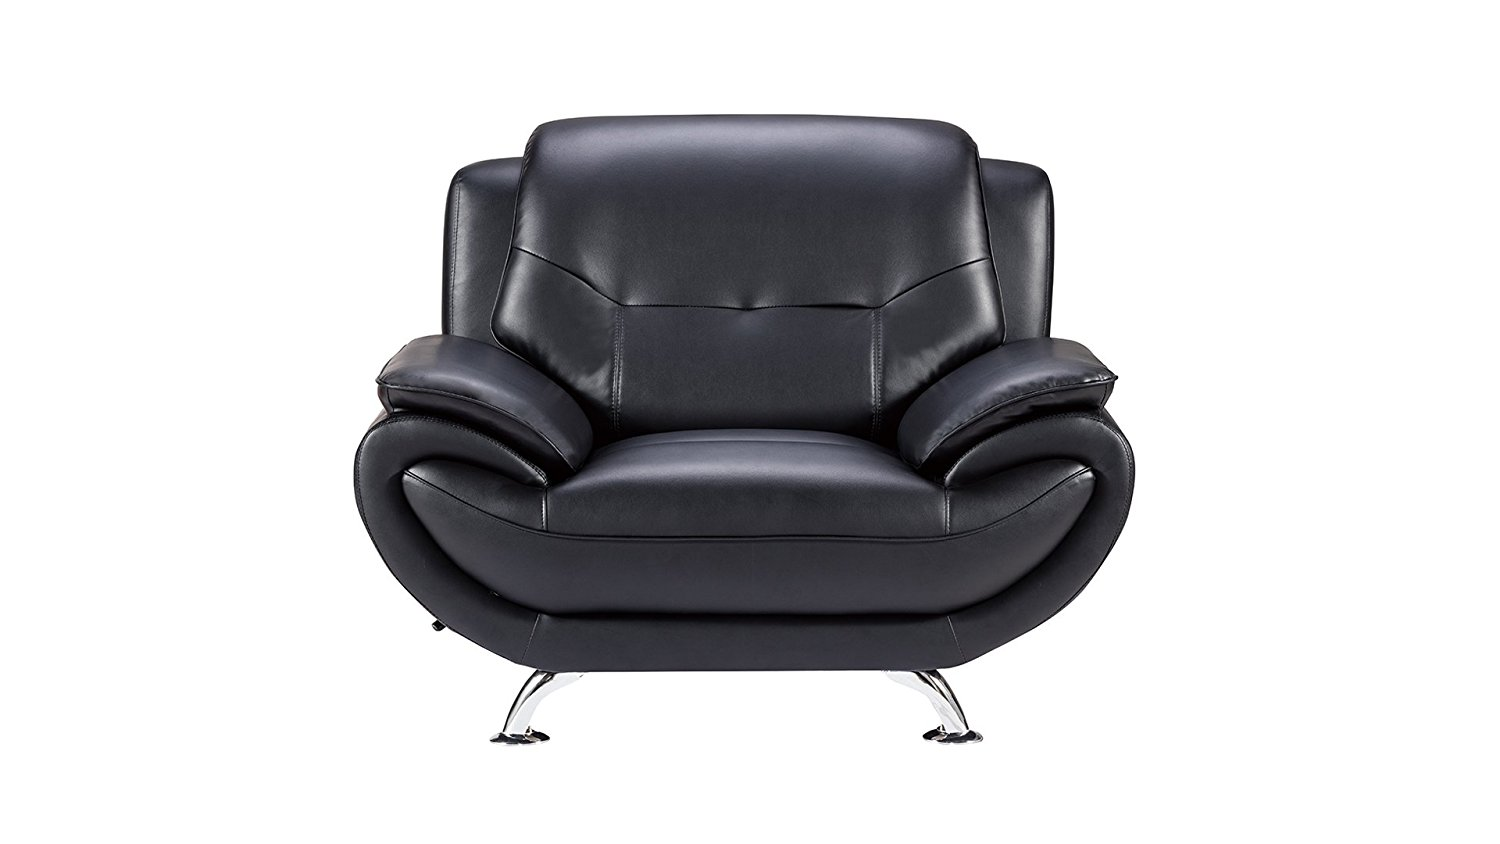 American Eagle Furniture Highland Bonded Leather Living Room Sofa Chair with Pillow Top Armrests, Black